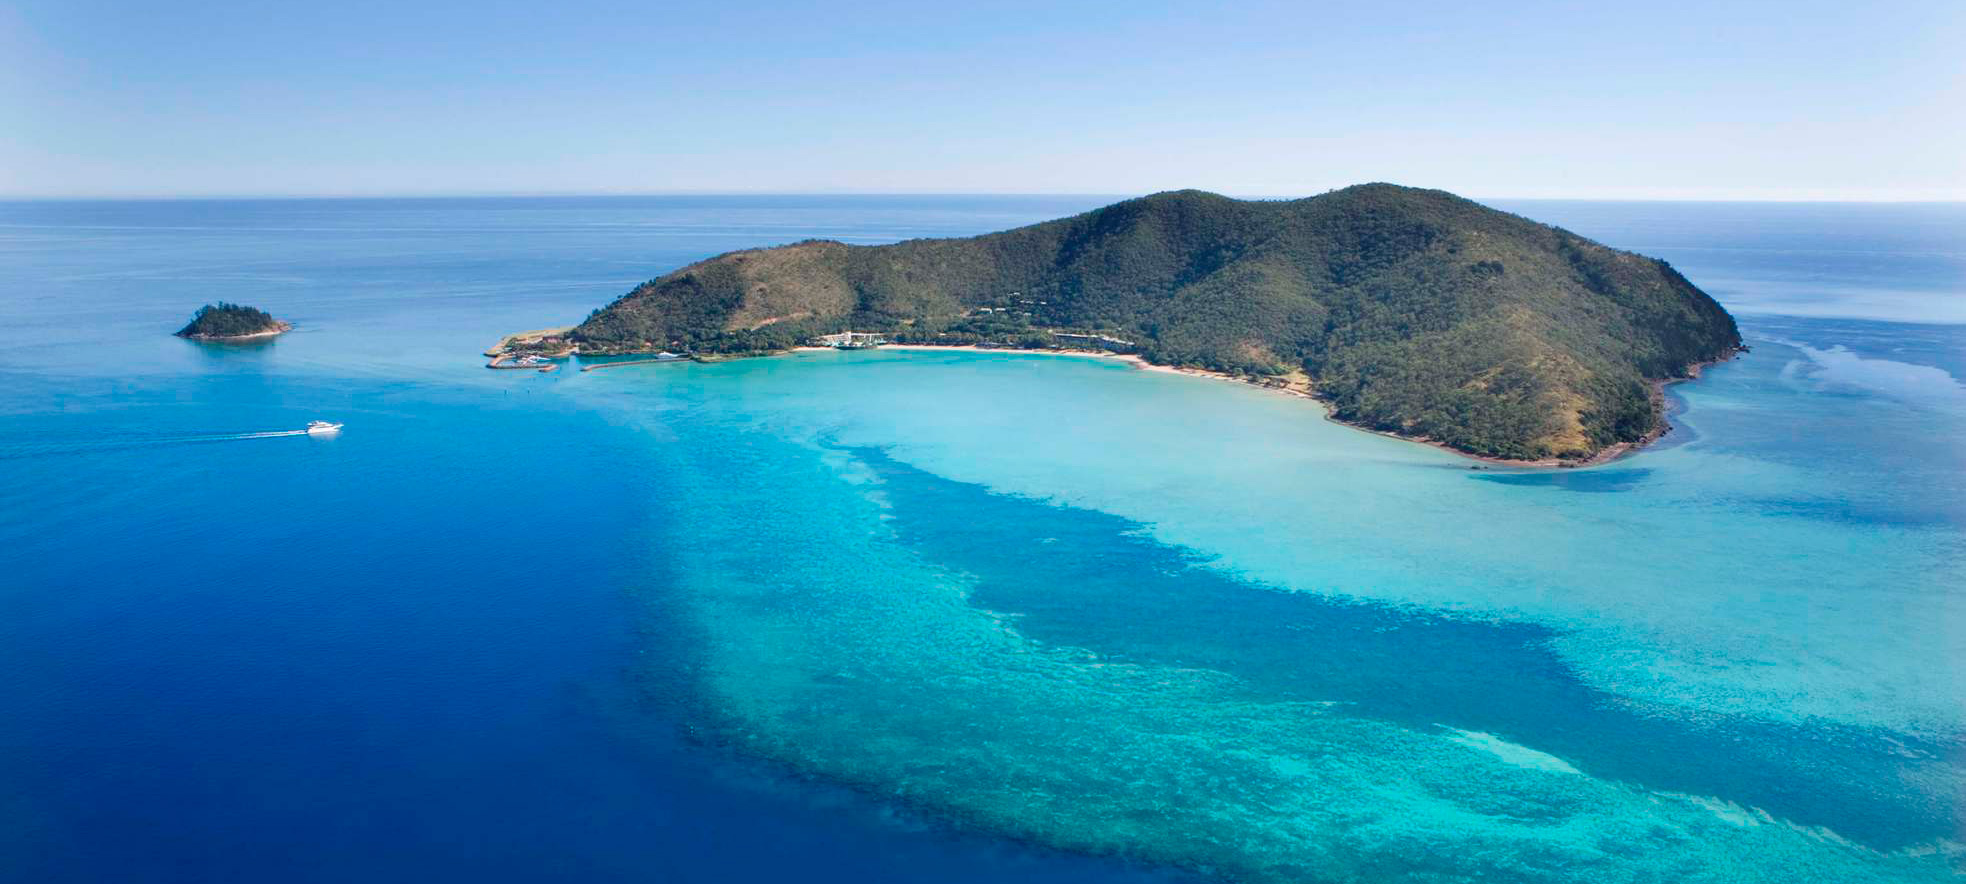 Luxury Australia with Hayman Island